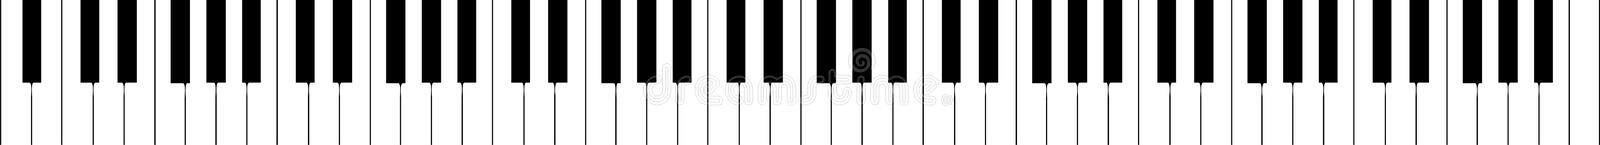 Piano keyboard - isolated vector illustration royalty free stock images